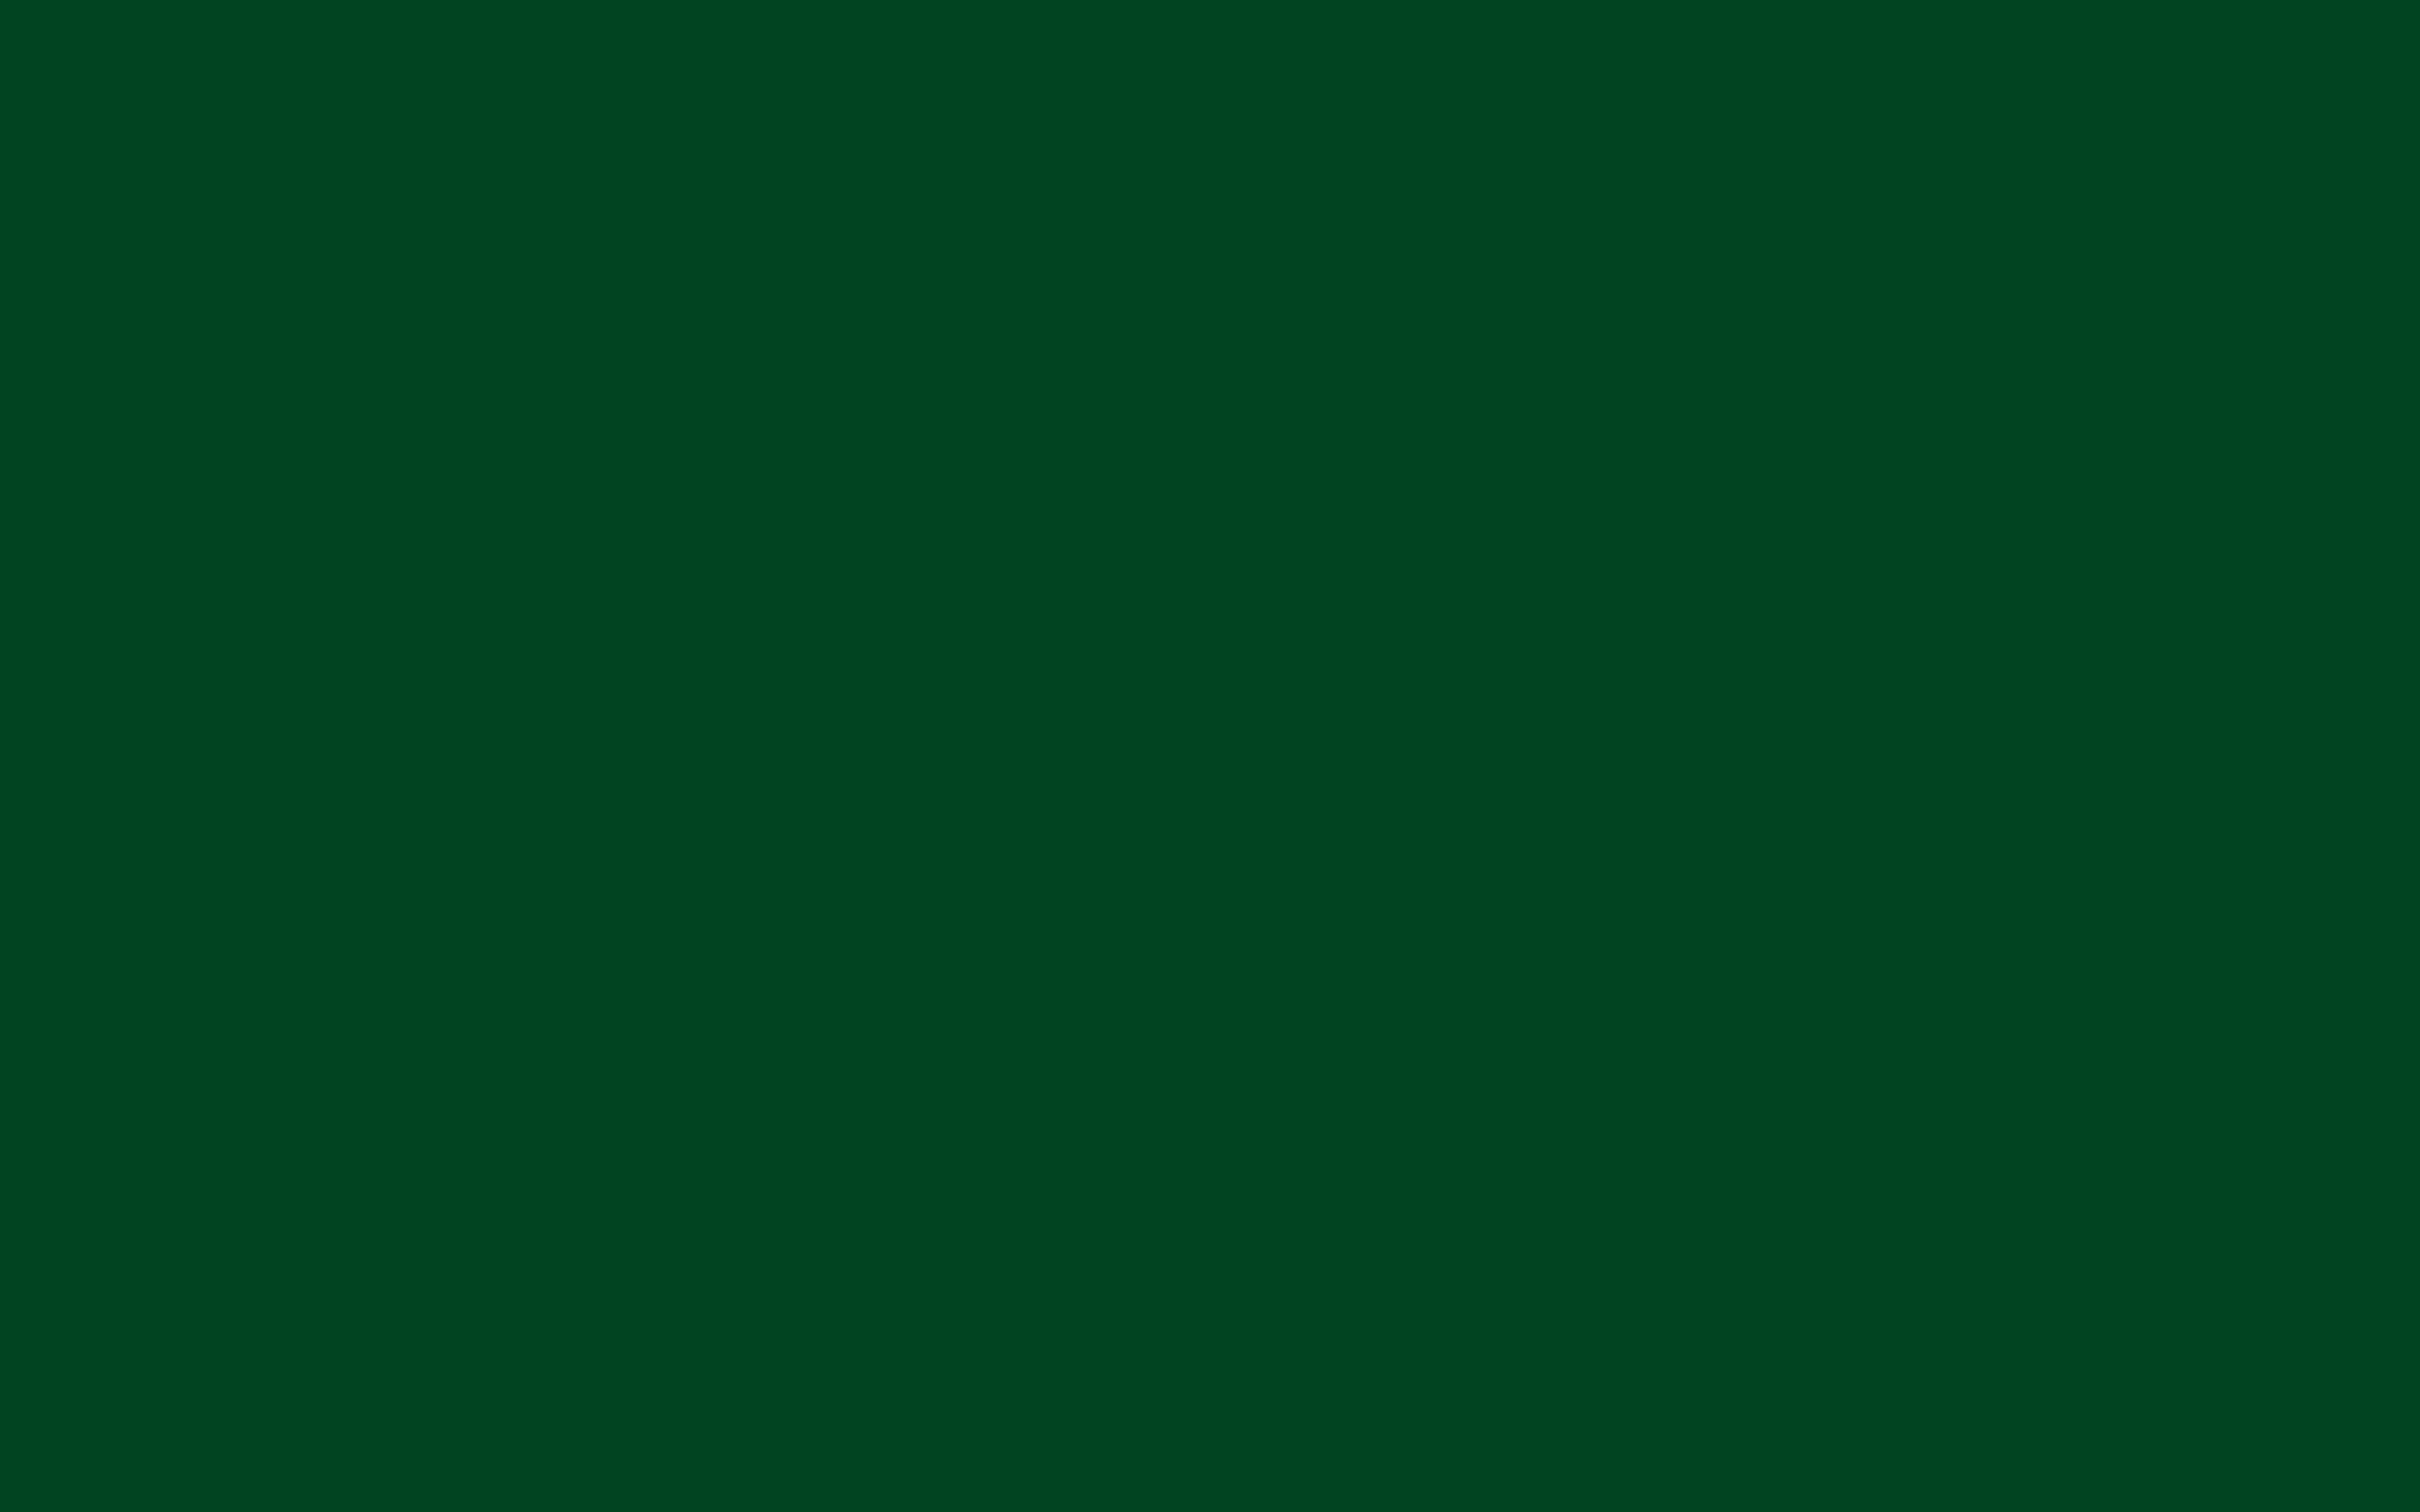 UP Forest Green Solid Color Background